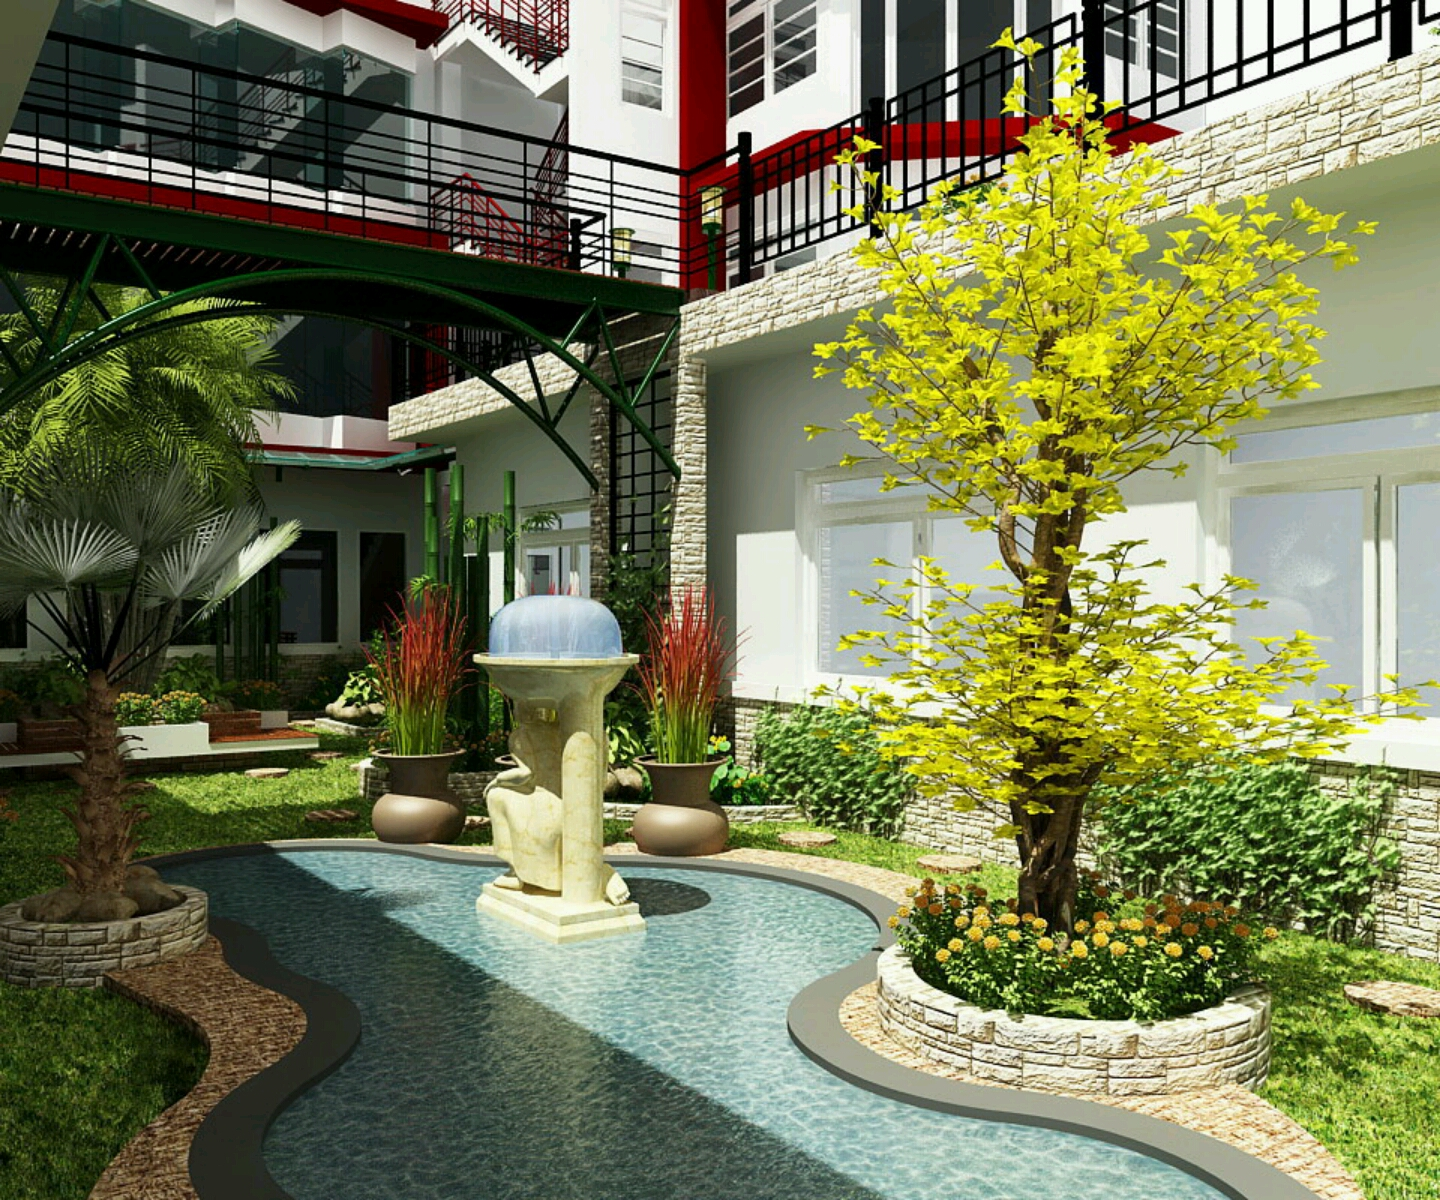 Remarkable Beautiful Home Gardens Design Ideas 1440 x 1200 · 1610 kB · jpeg